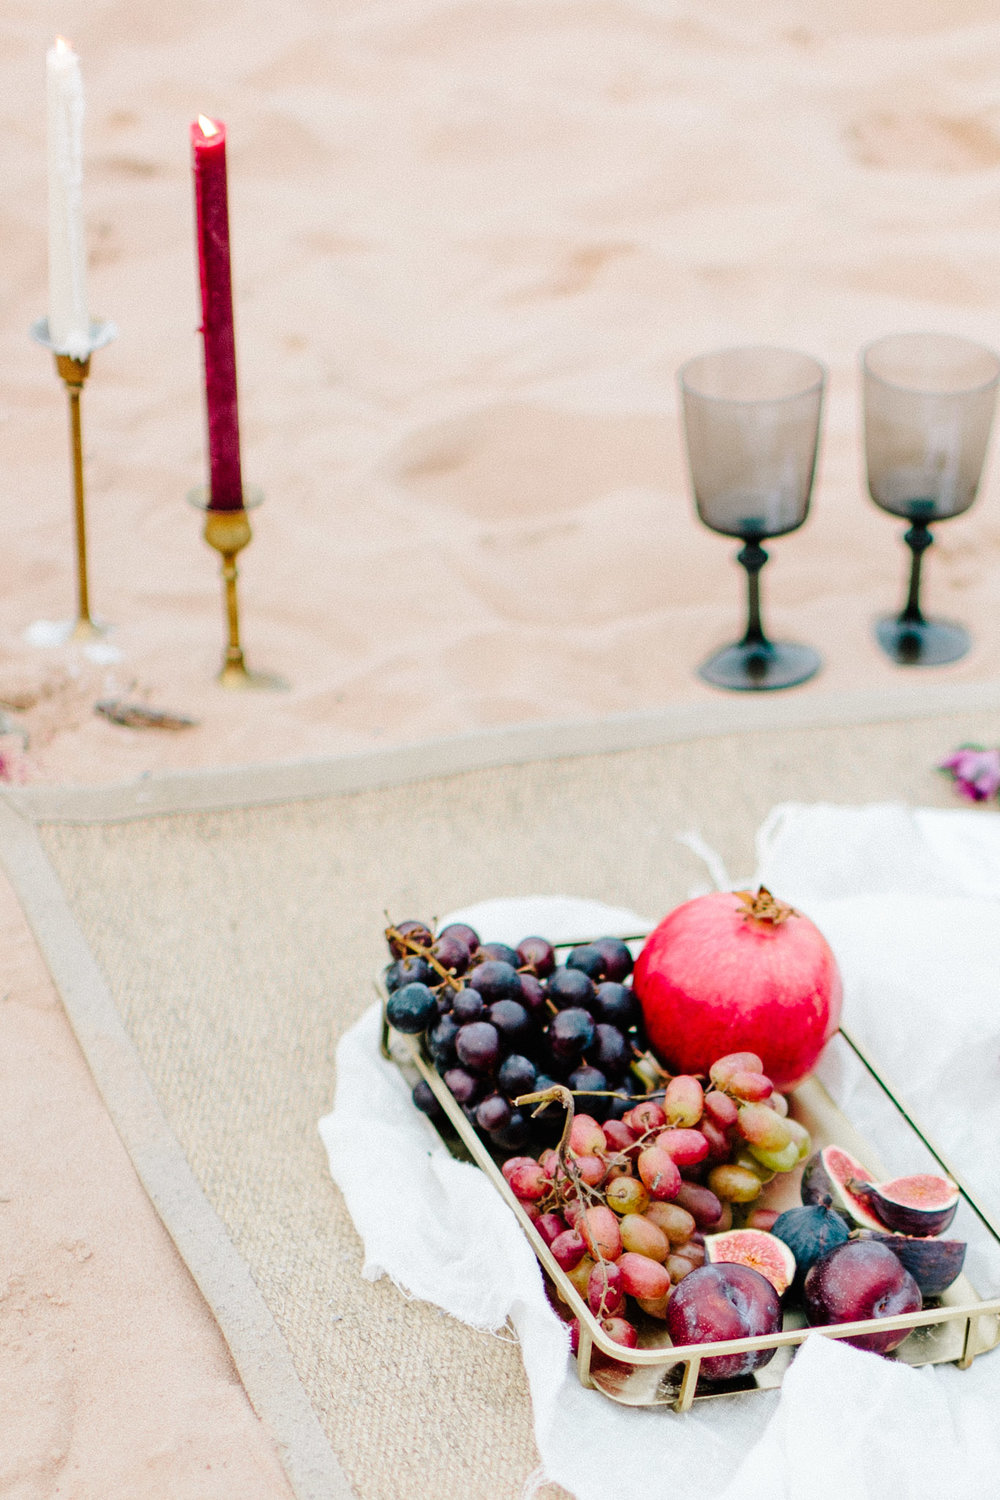 Speyer-Moroccan-Wedding-Inspiration-Pia-Anna-Christian-Wedding-Photography-S-41.jpg